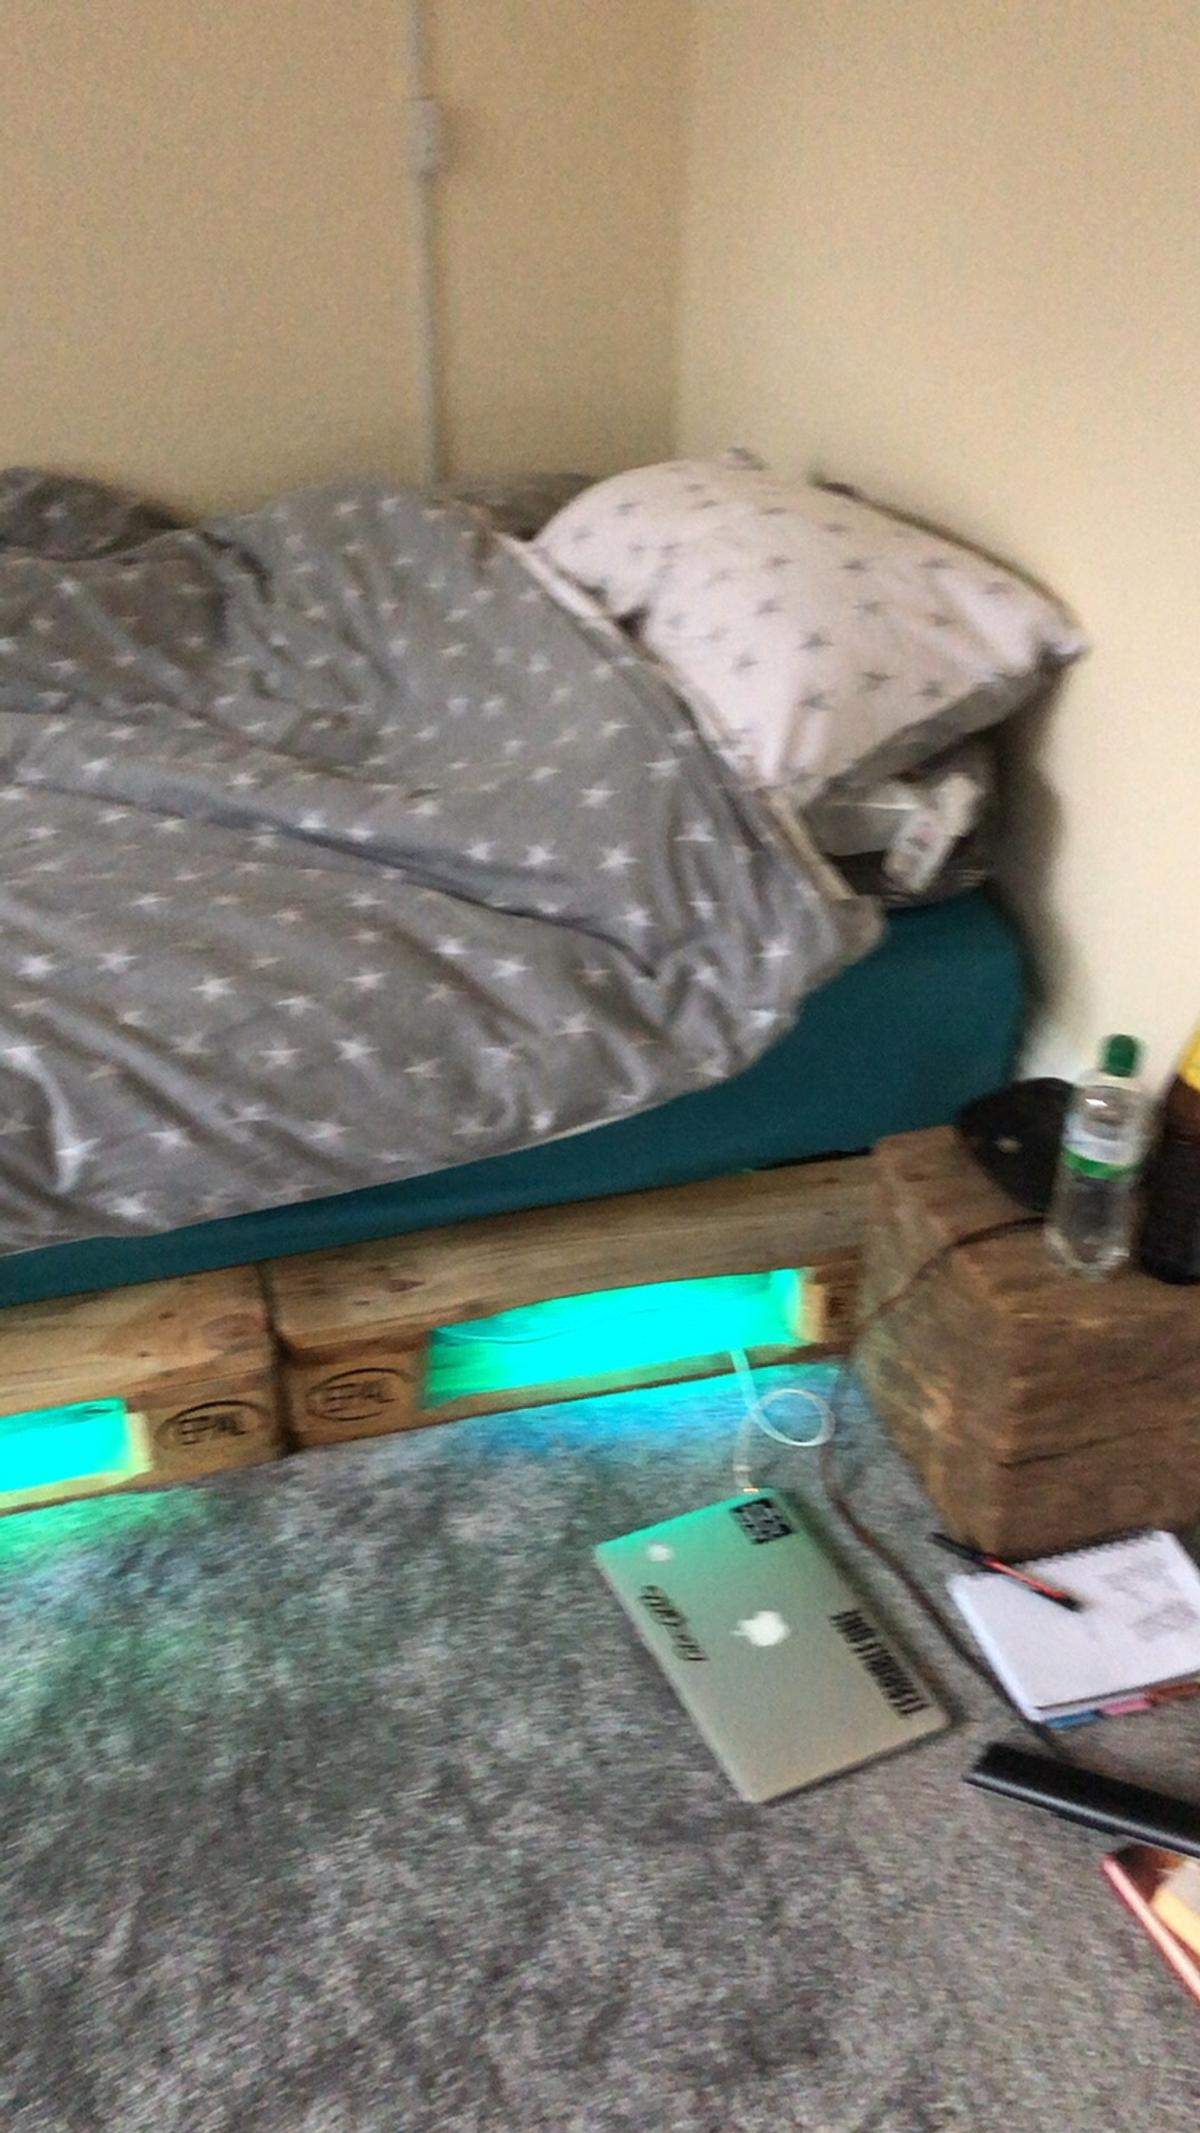 Pallet Bed In M34 Stockport For 199 00 For Sale Shpock